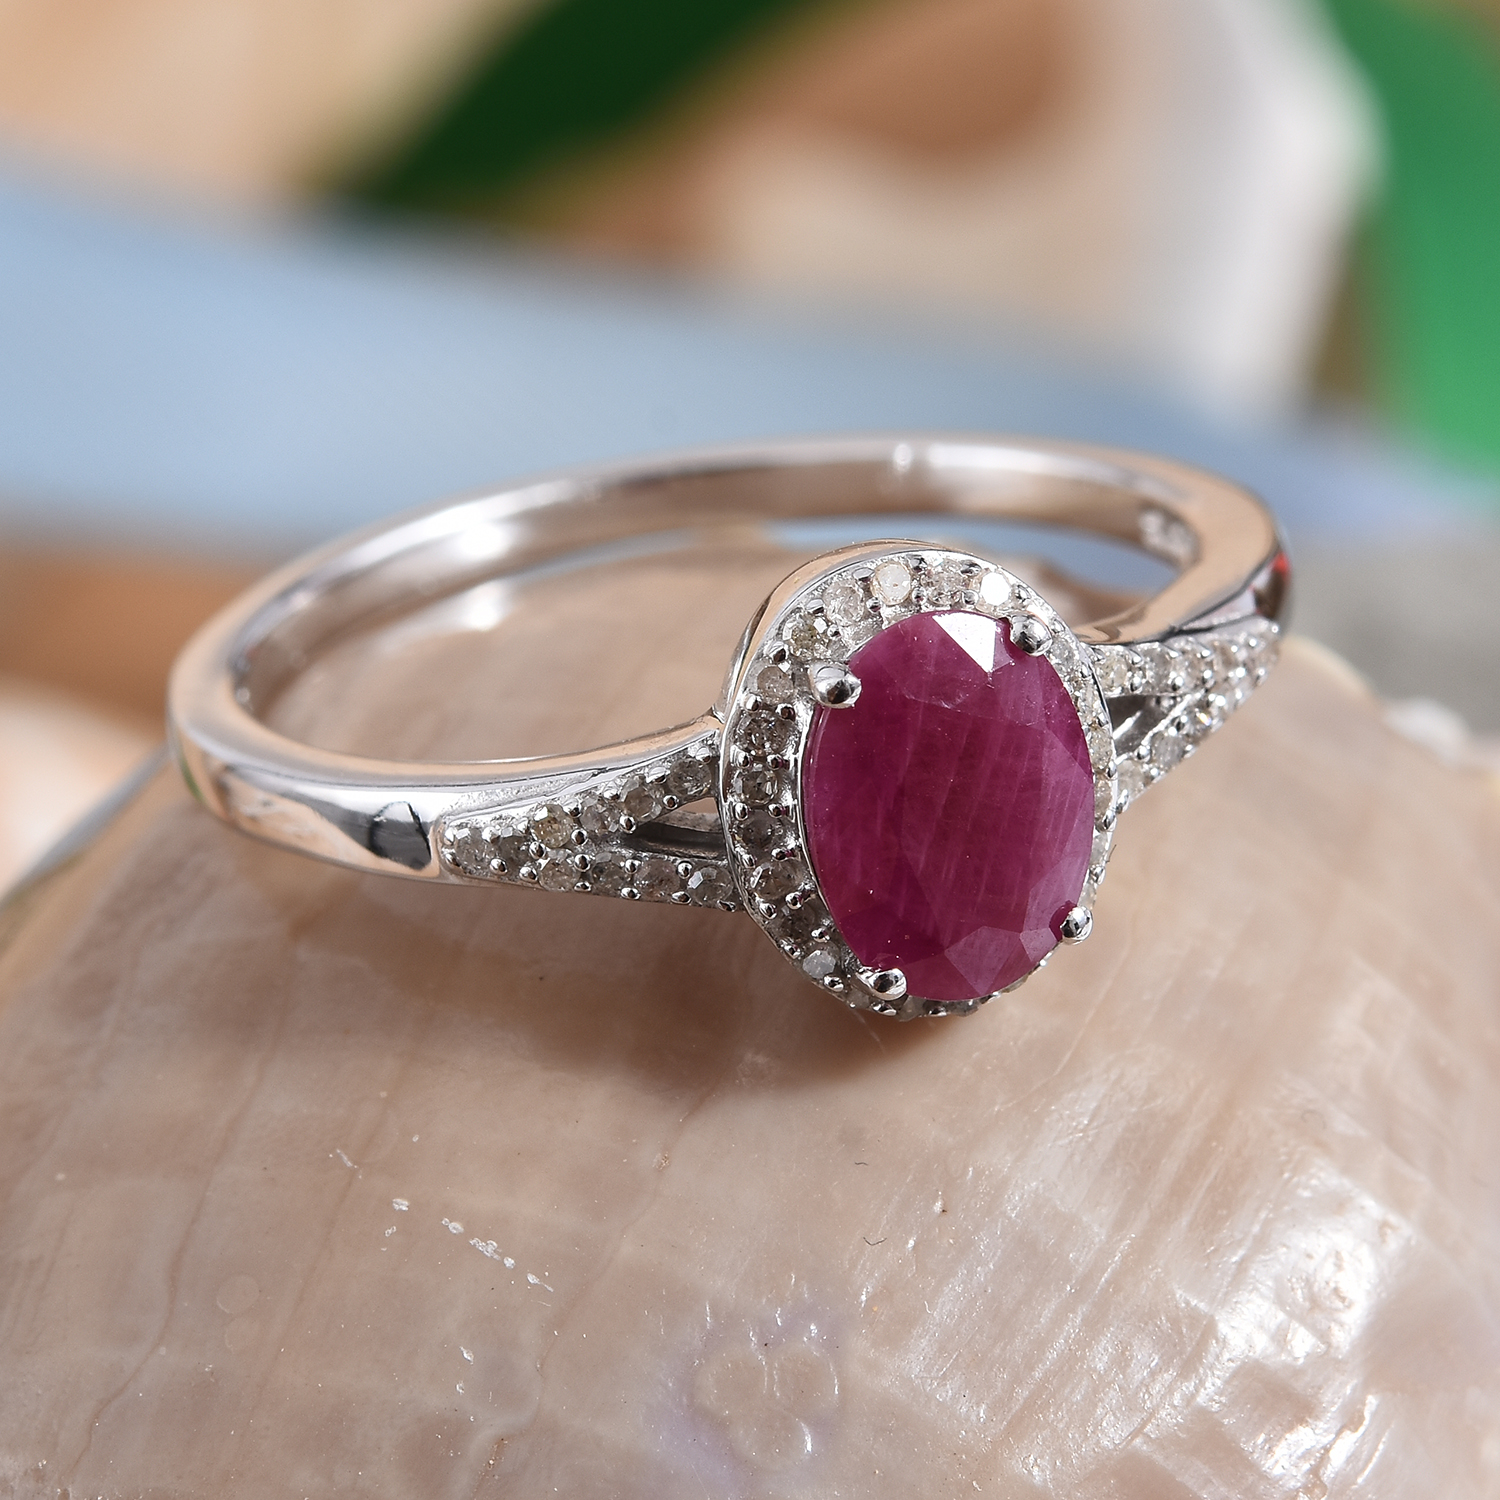 1d68bd5a37f5d Burmese Ruby, Diamond (0.17 ct) Ring in Platinum Over Sterling Silver (Size  8.0) 1.72 ctw